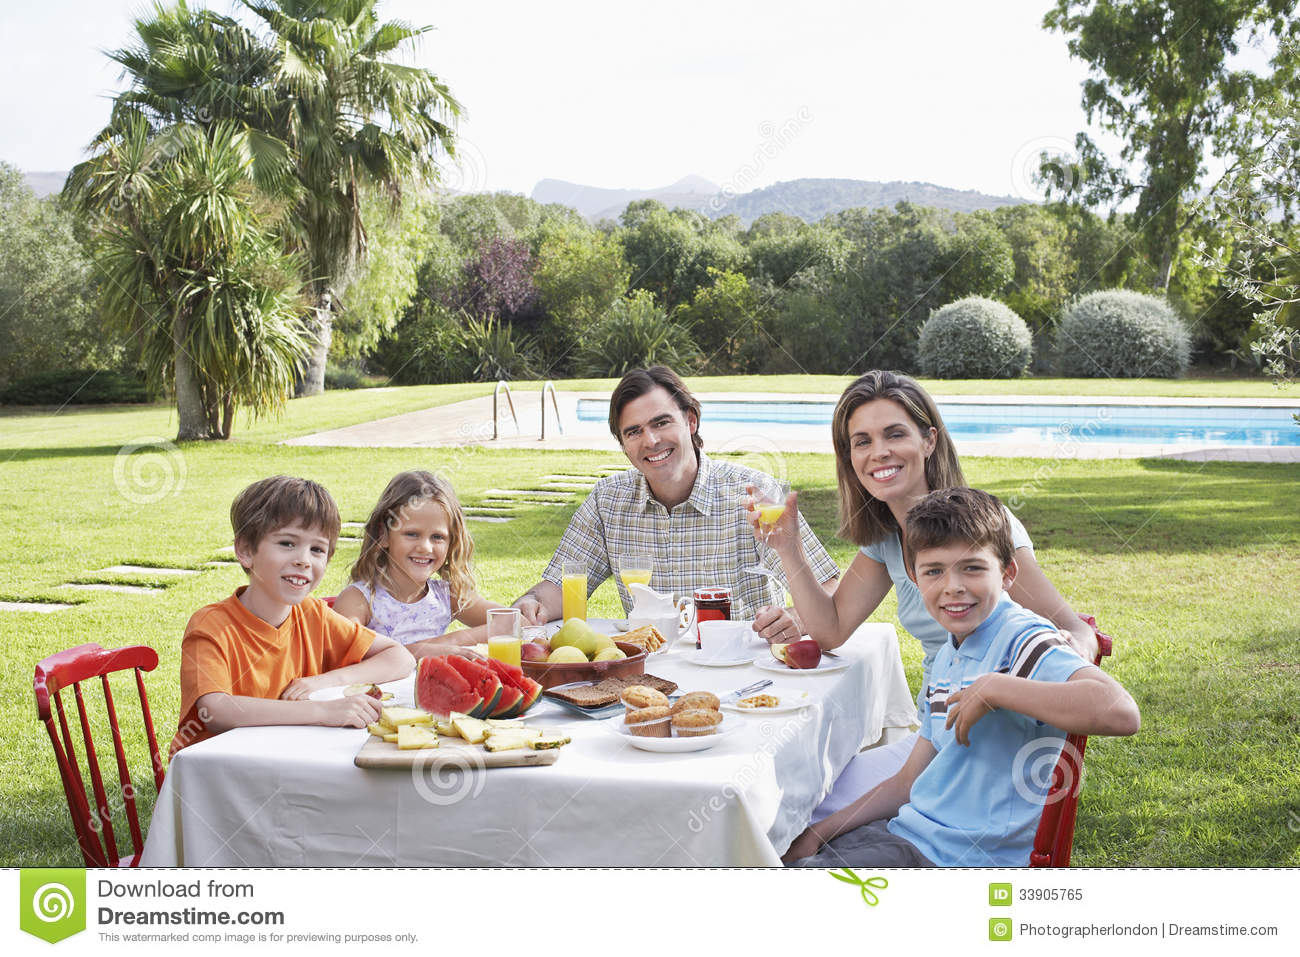 147 Family Sitting Breakfast Table Garden Photos - Free & Royalty-Free  Stock Photos from Dreamstime